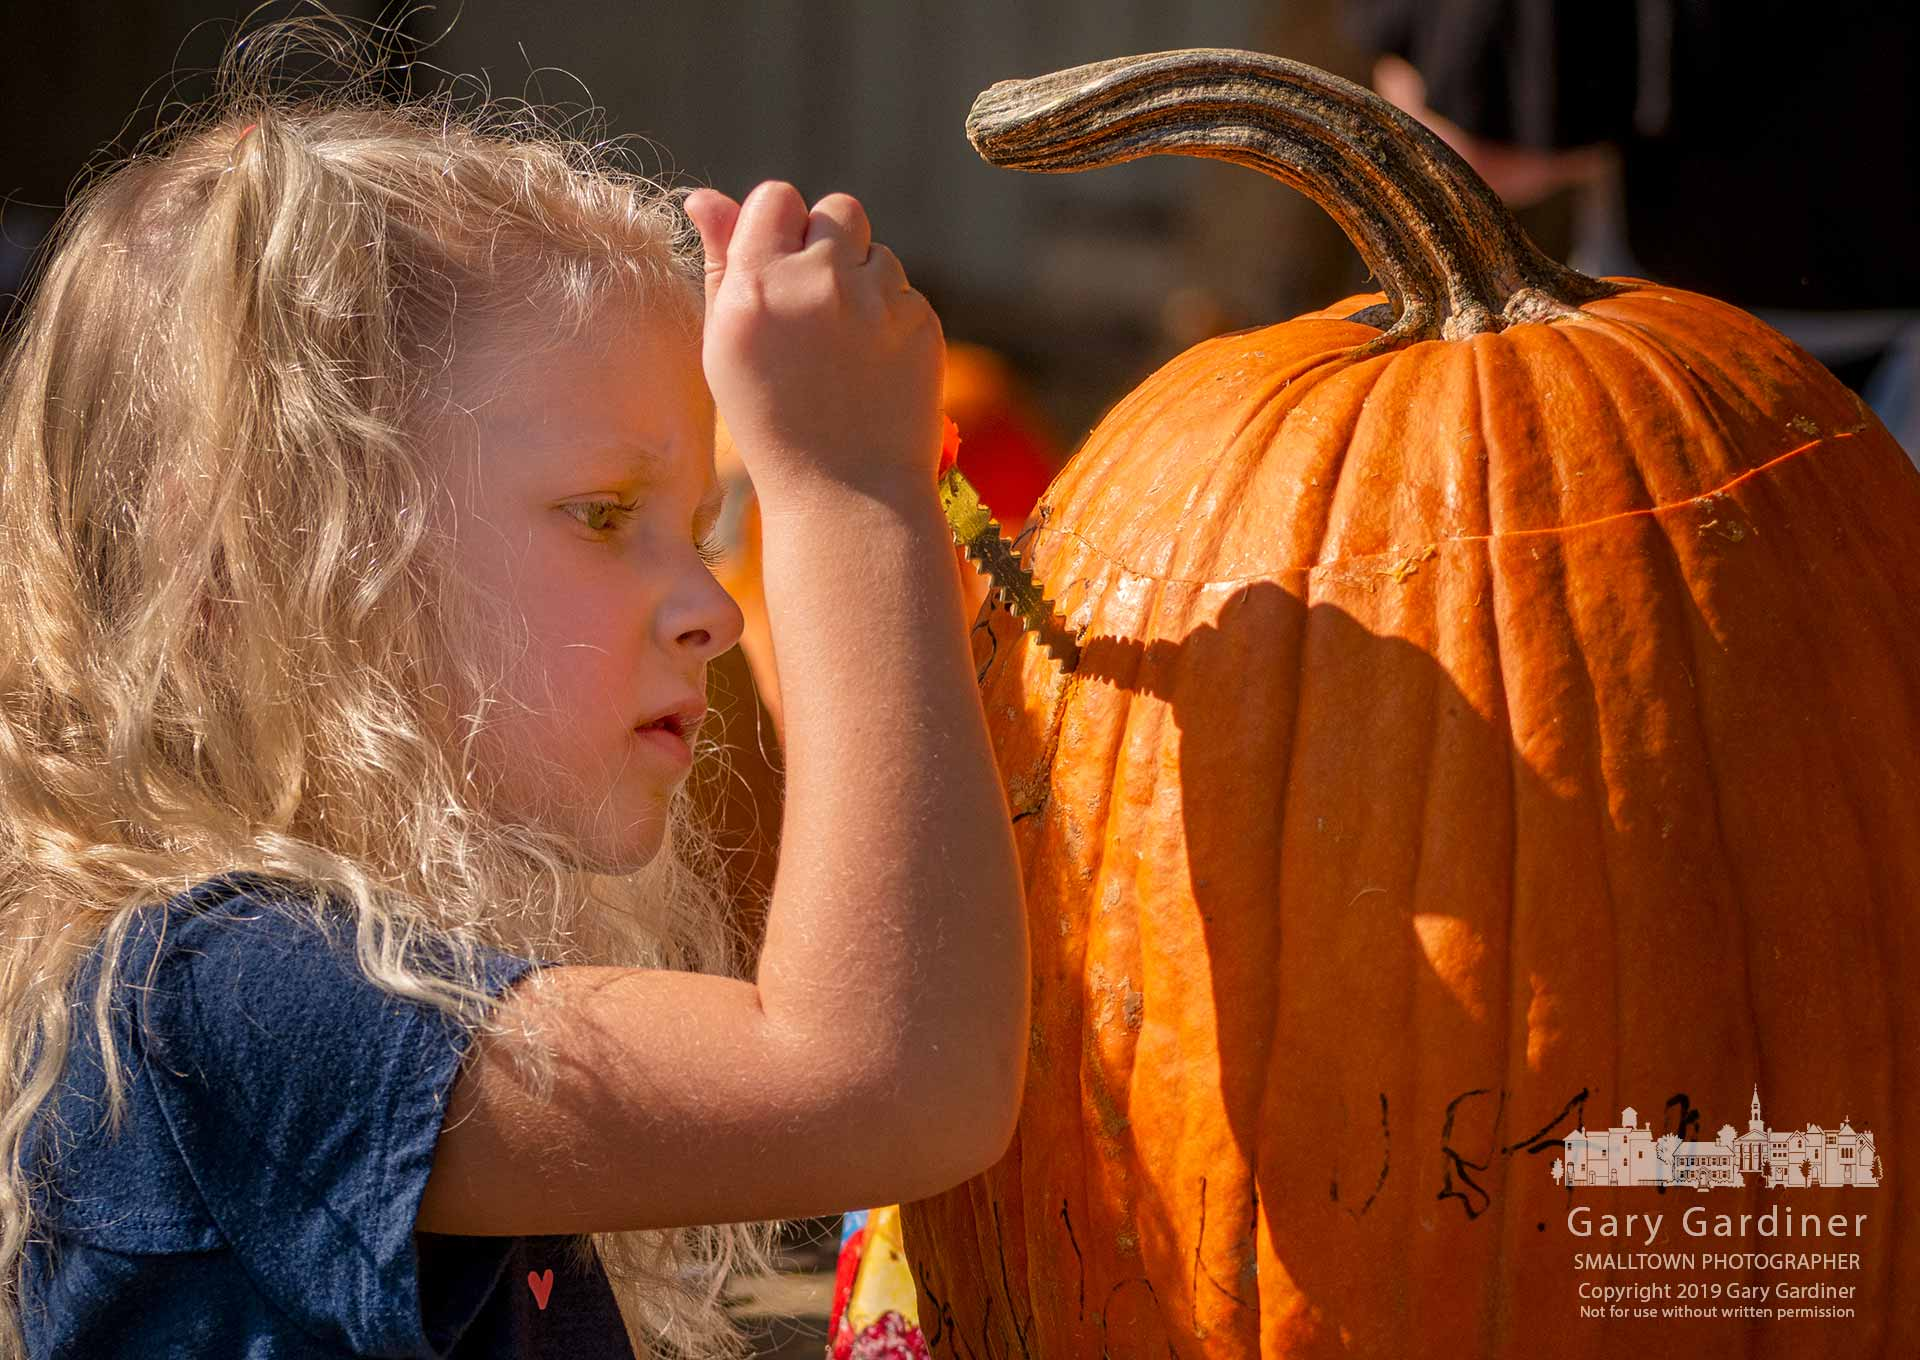 A young girl carves a face into one of the more than 2,000 pumpkins being prepared for the Greater Westerville Pumpkin Glow beginning Tuesday at Heritage Park and continuing for five days. My Final Photo for Oct. 20, 2019.